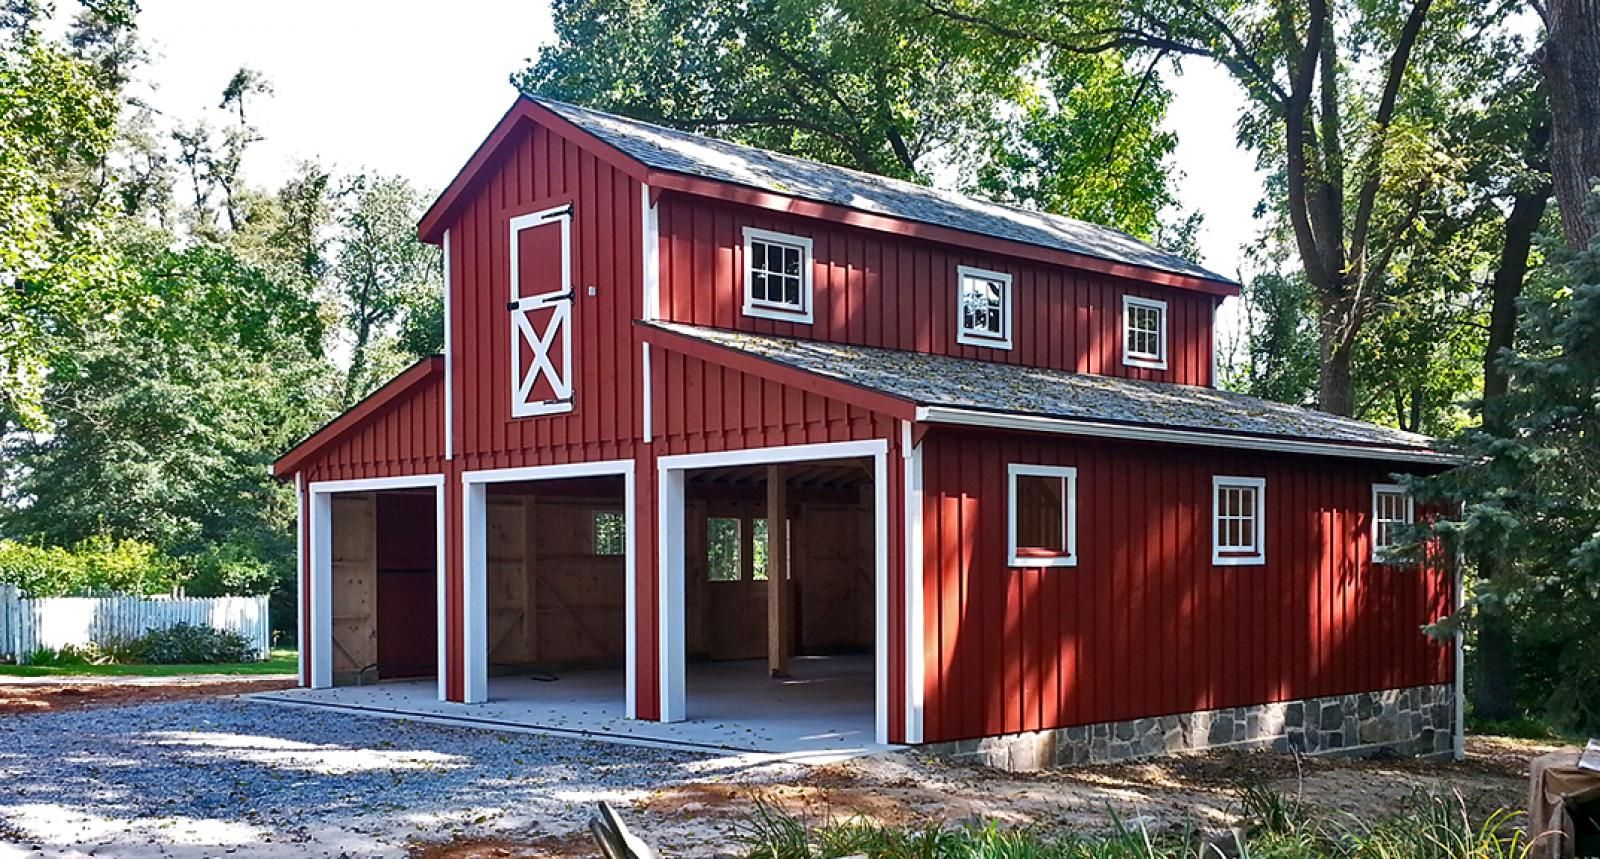 Related image garages pinterest barn apartments and for Barn apartment ideas